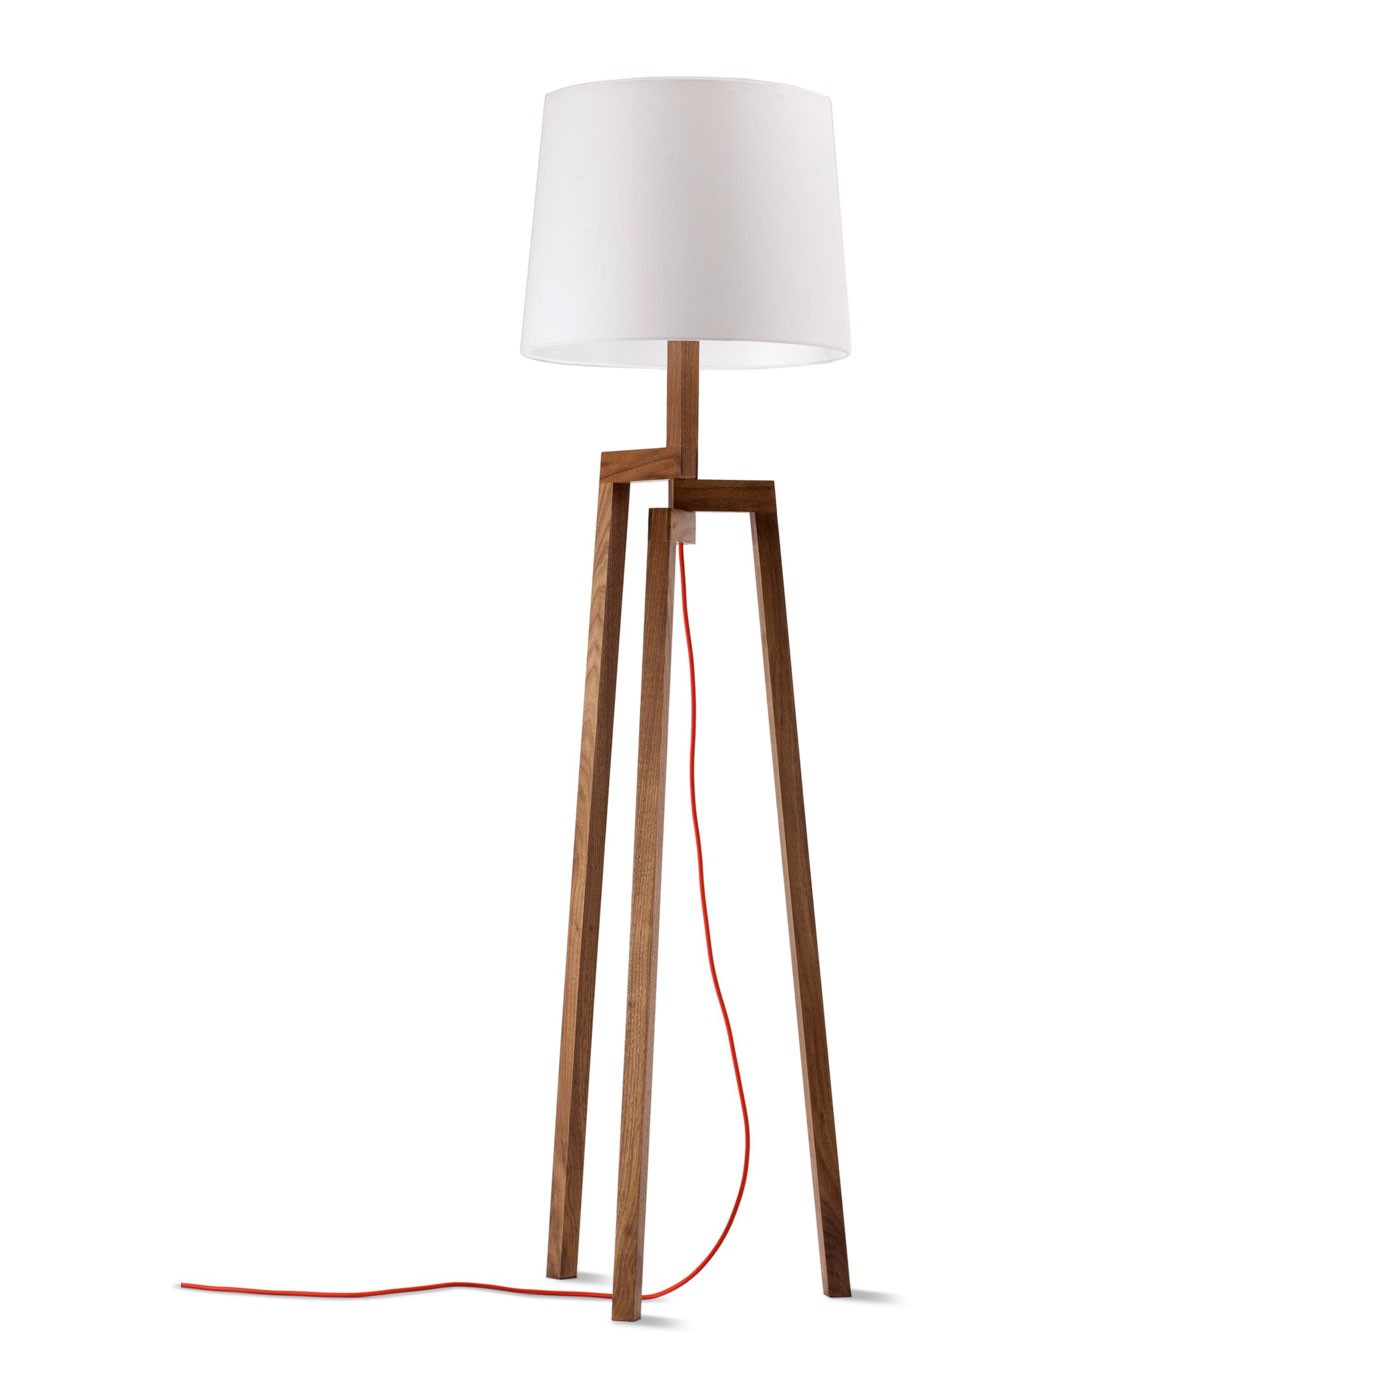 Modern Lamps Design Modern Floor Lamps Sleek And Elegant Styles Inoutinterior